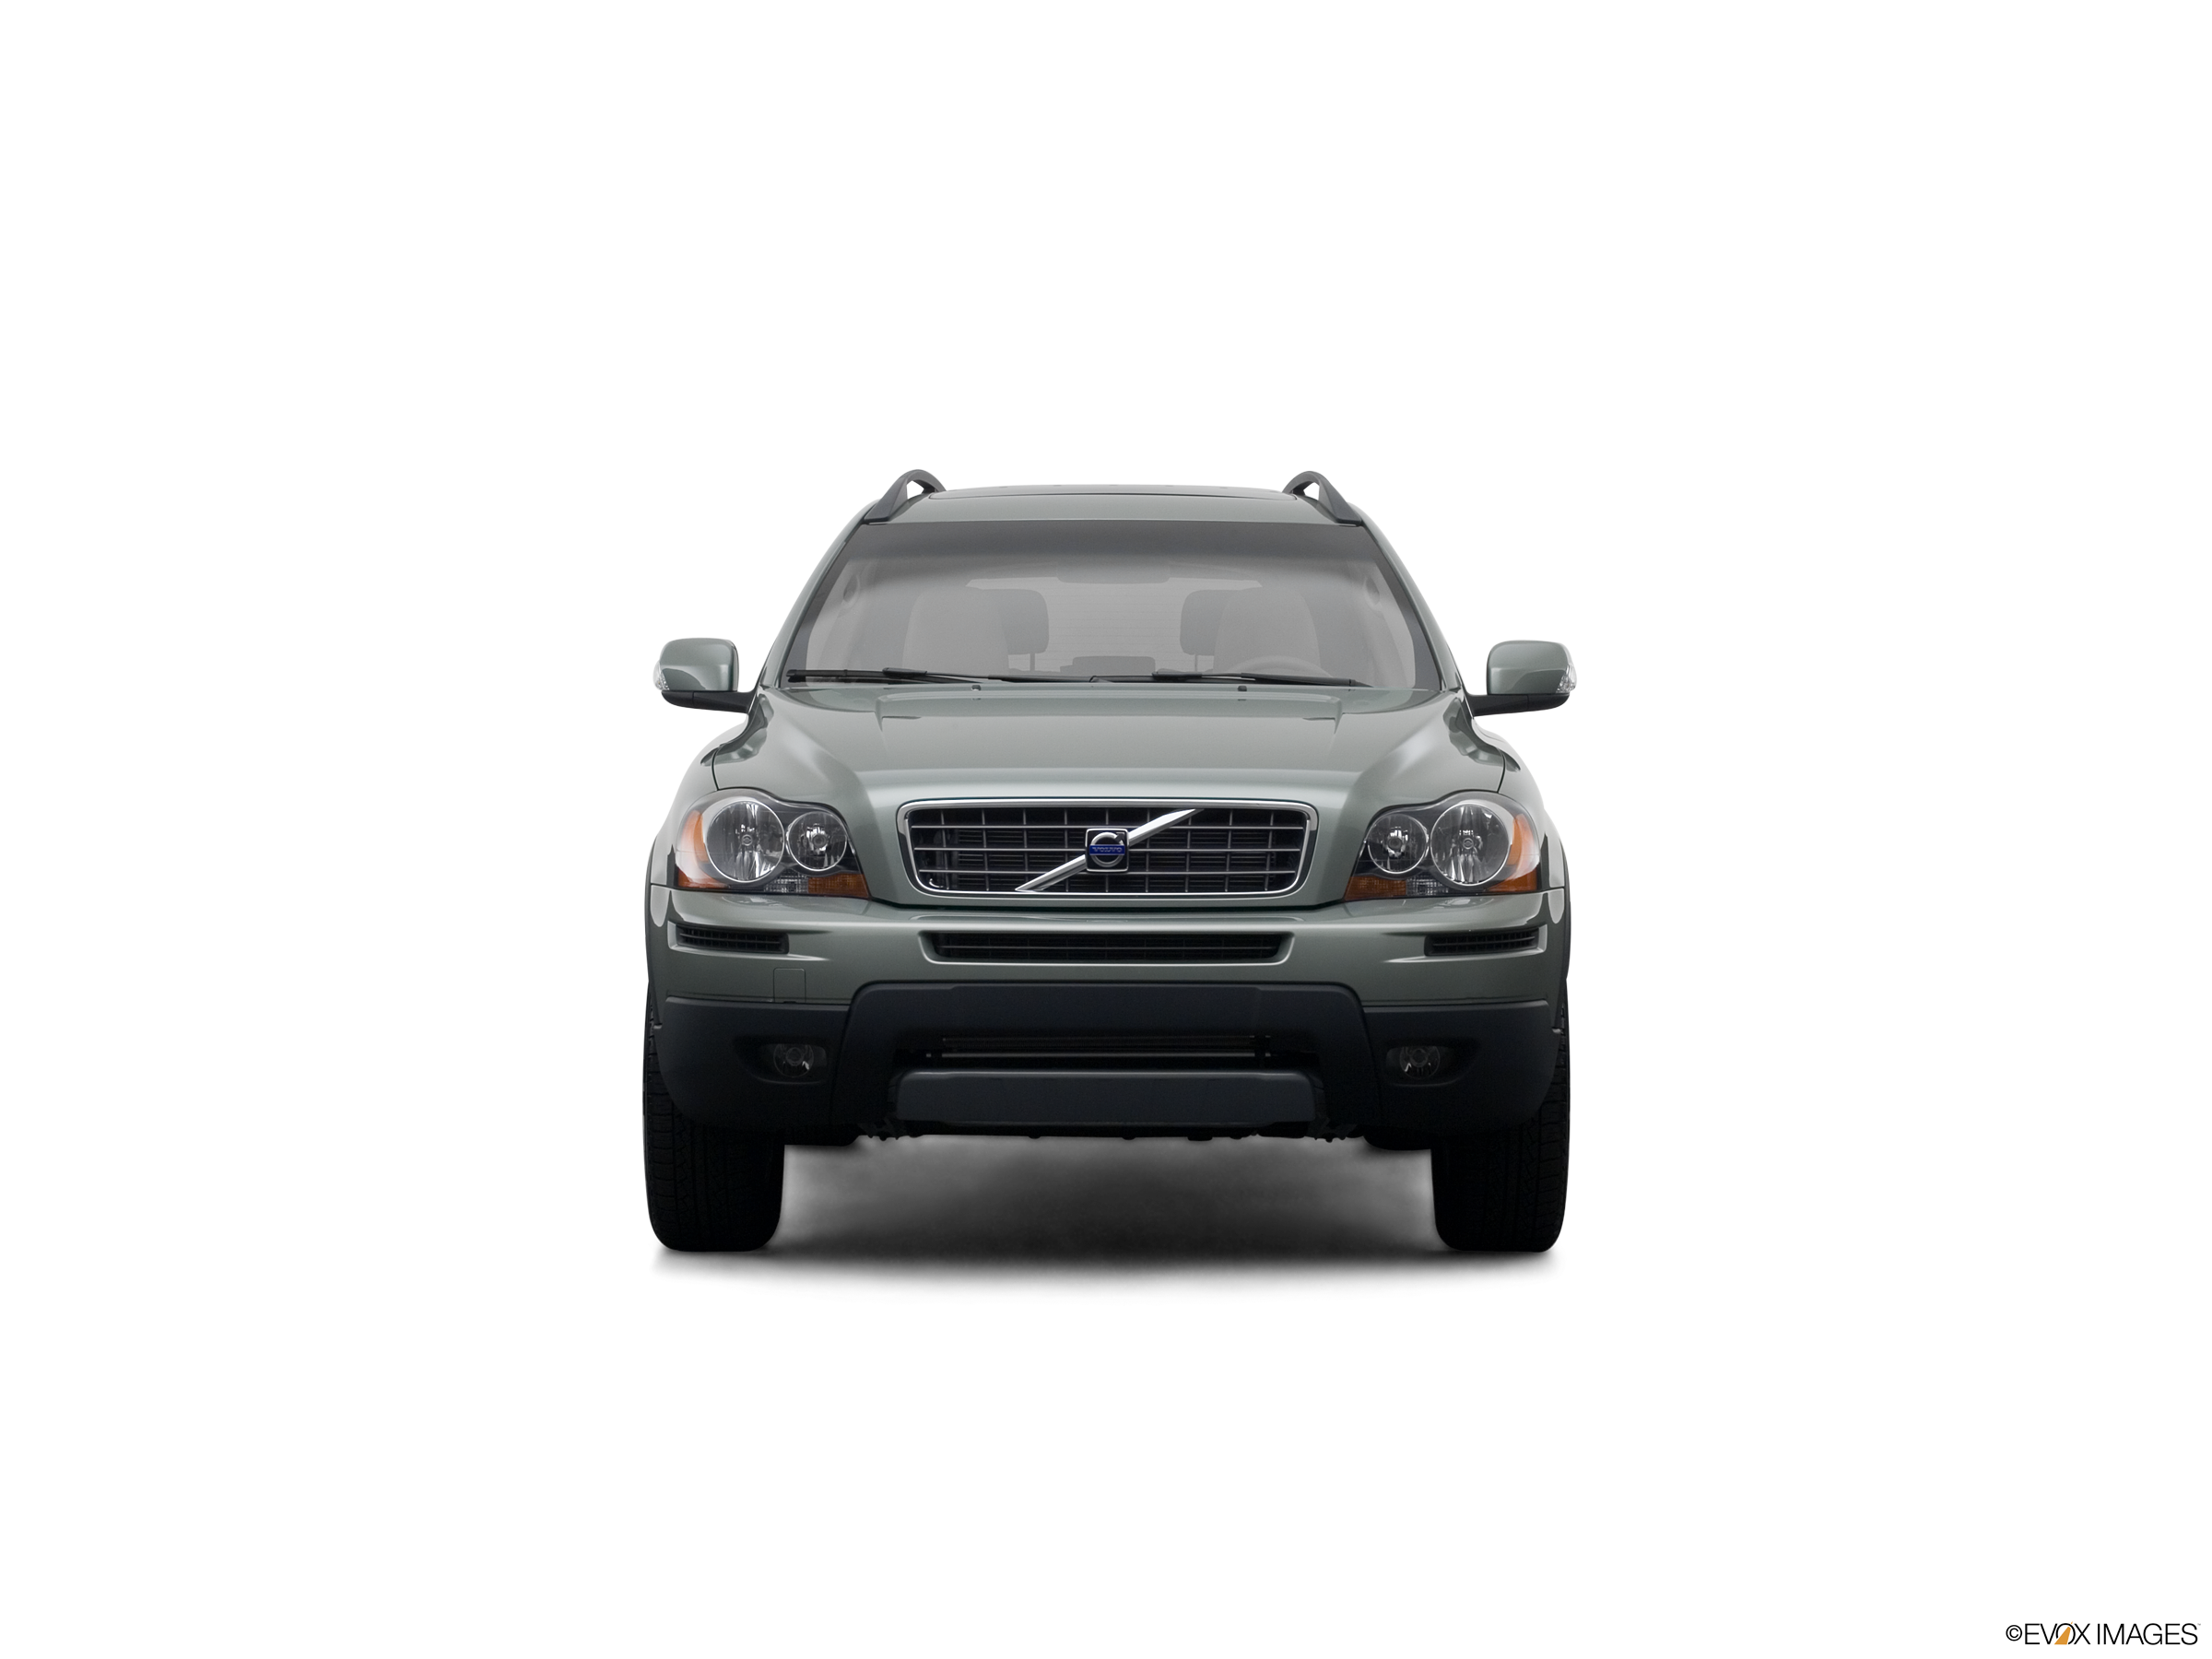 Used 2008 Volvo Xc90 Values Cars For Sale Kelley Blue Book